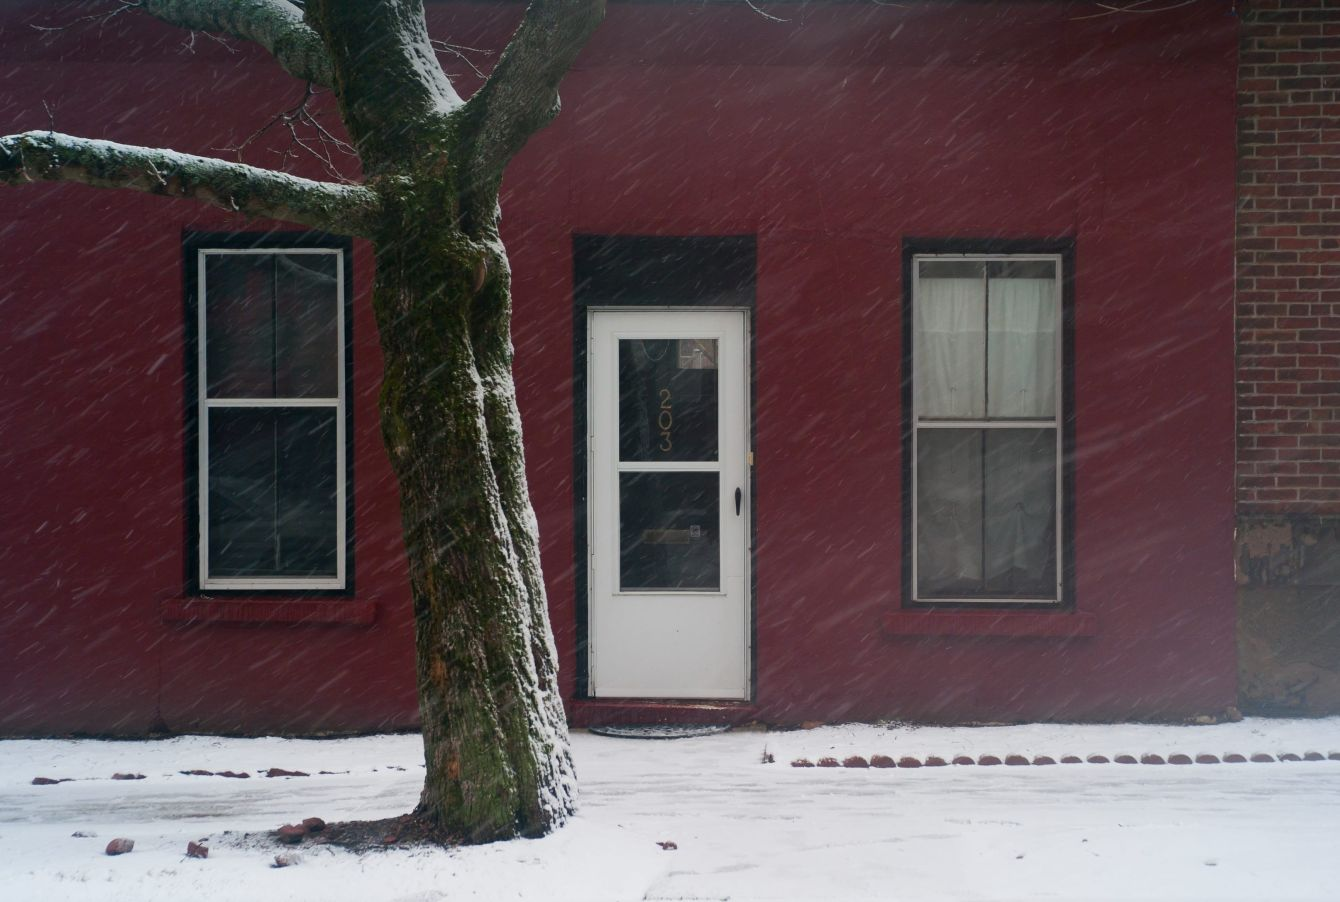 Click thumbnail to see details about photo - Snowing on Germain Street Photograph